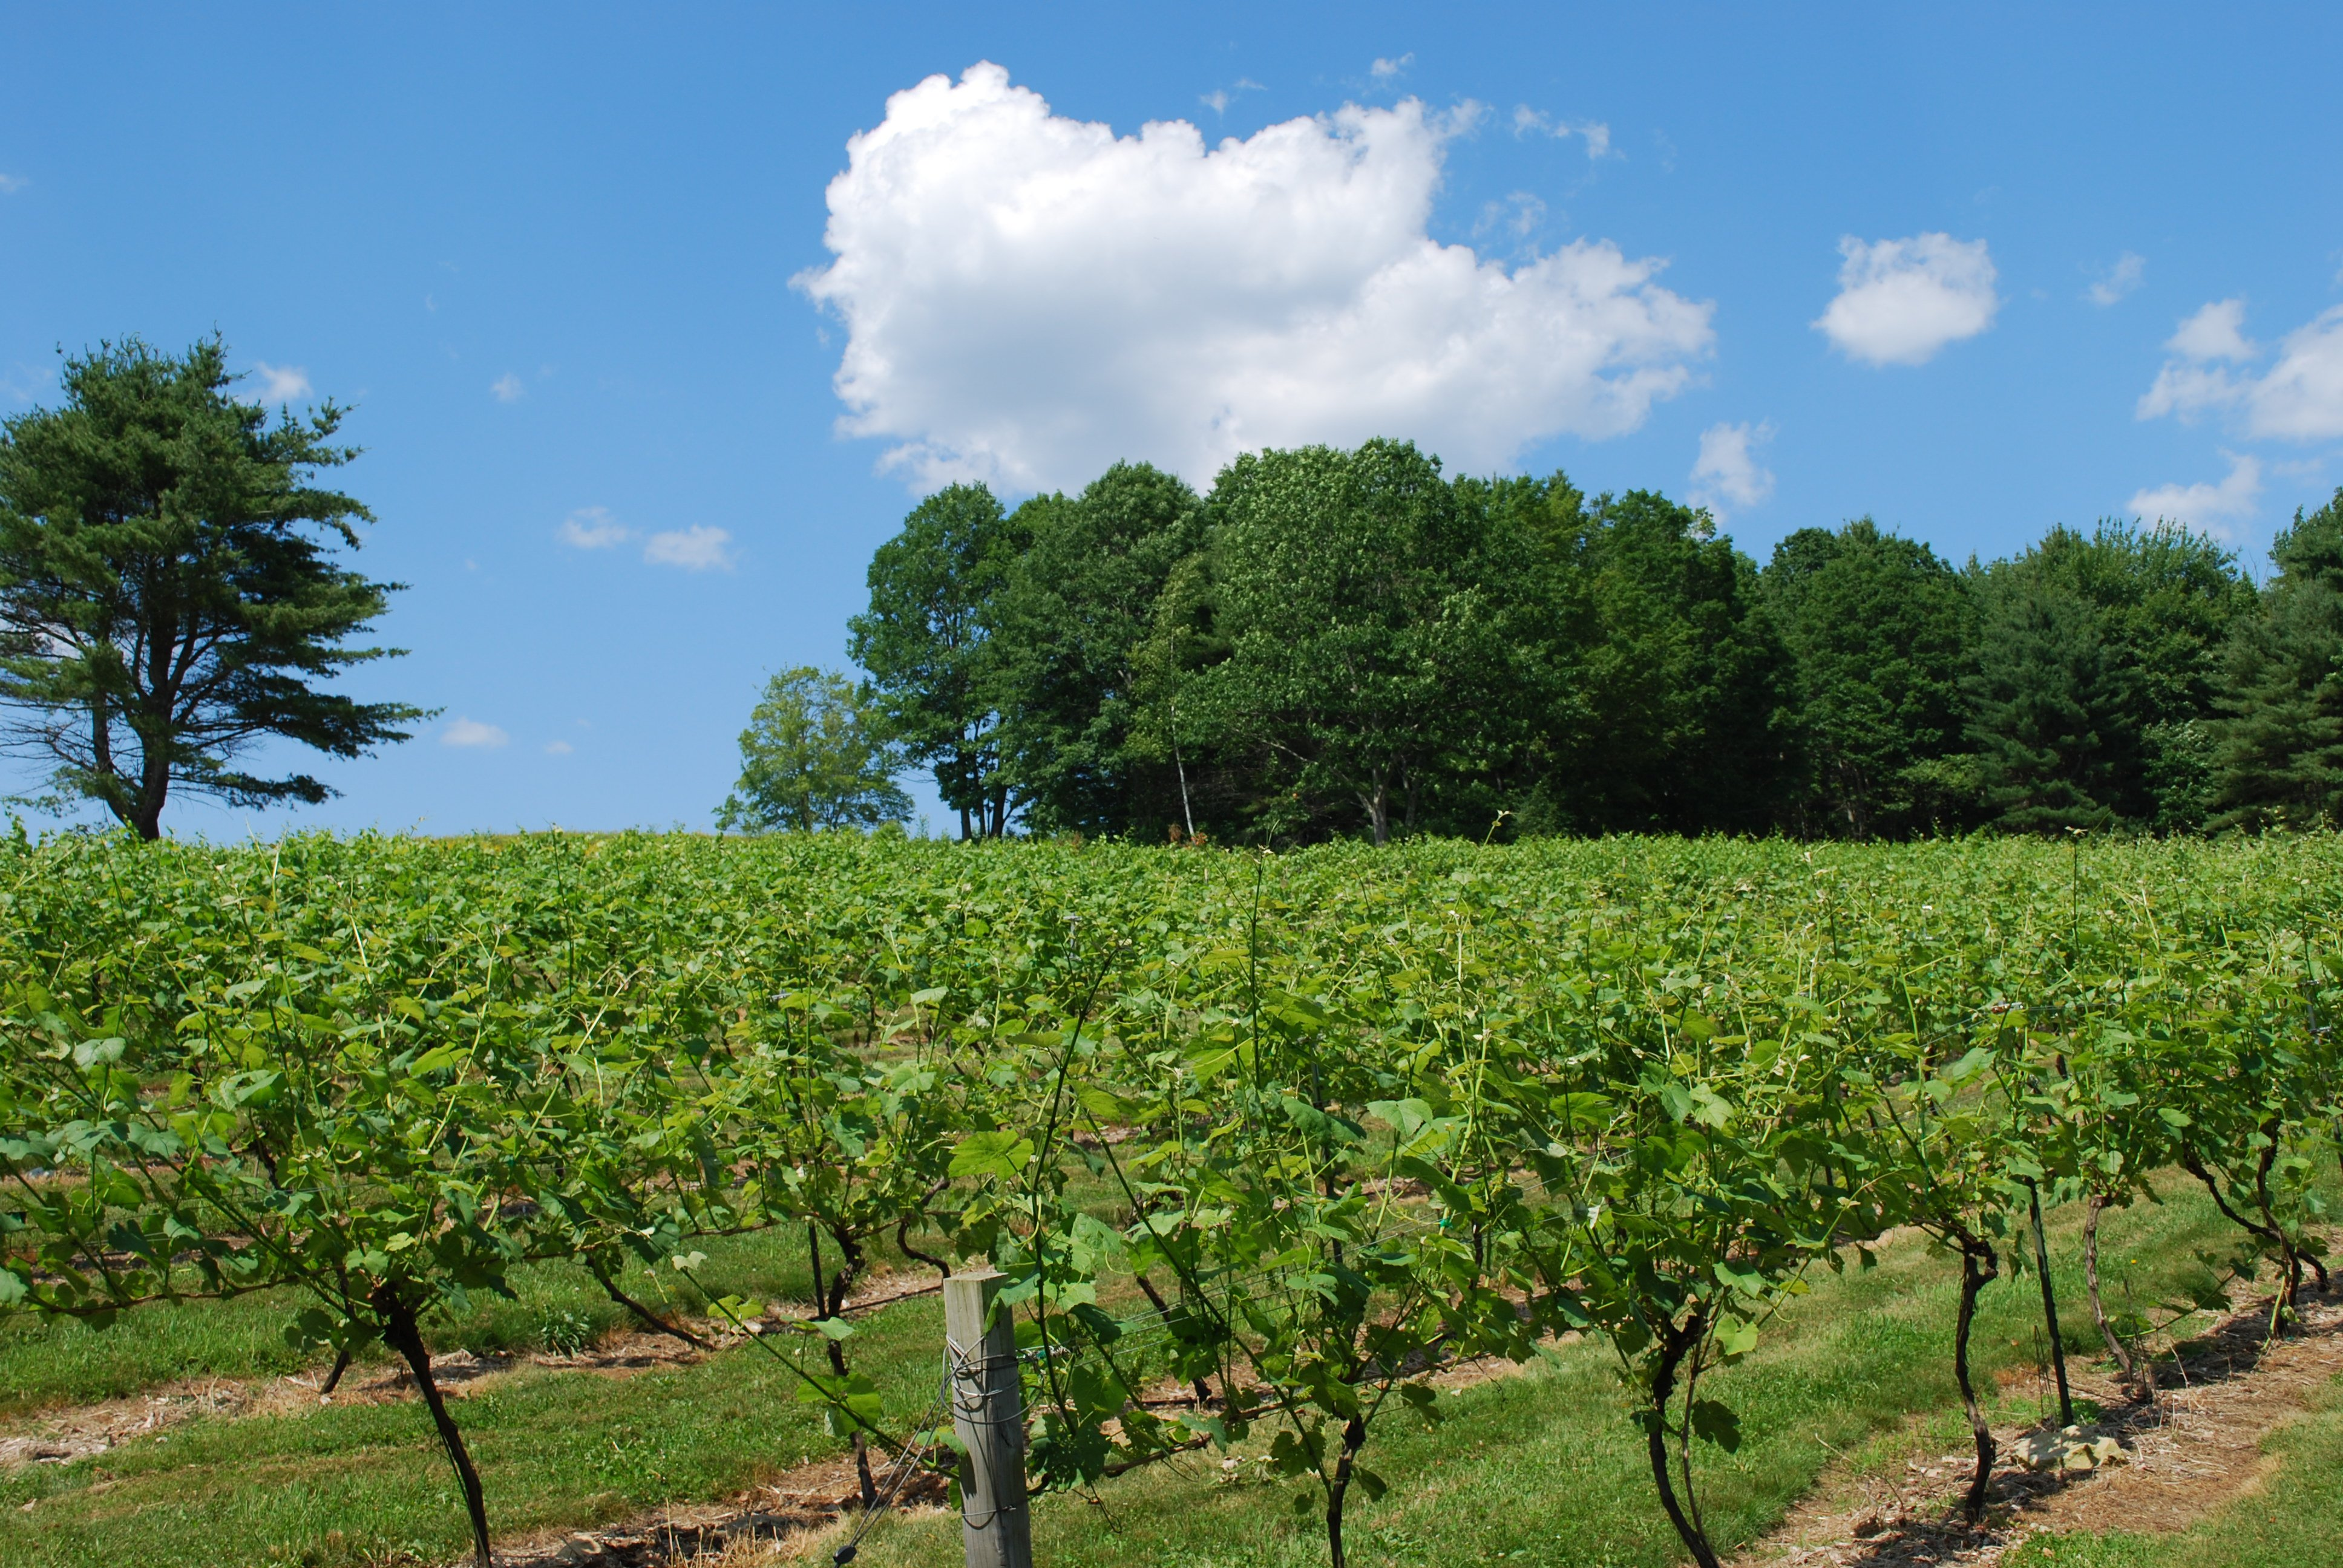 Early summer grape vines at Savage Oakes, Union, Maine.